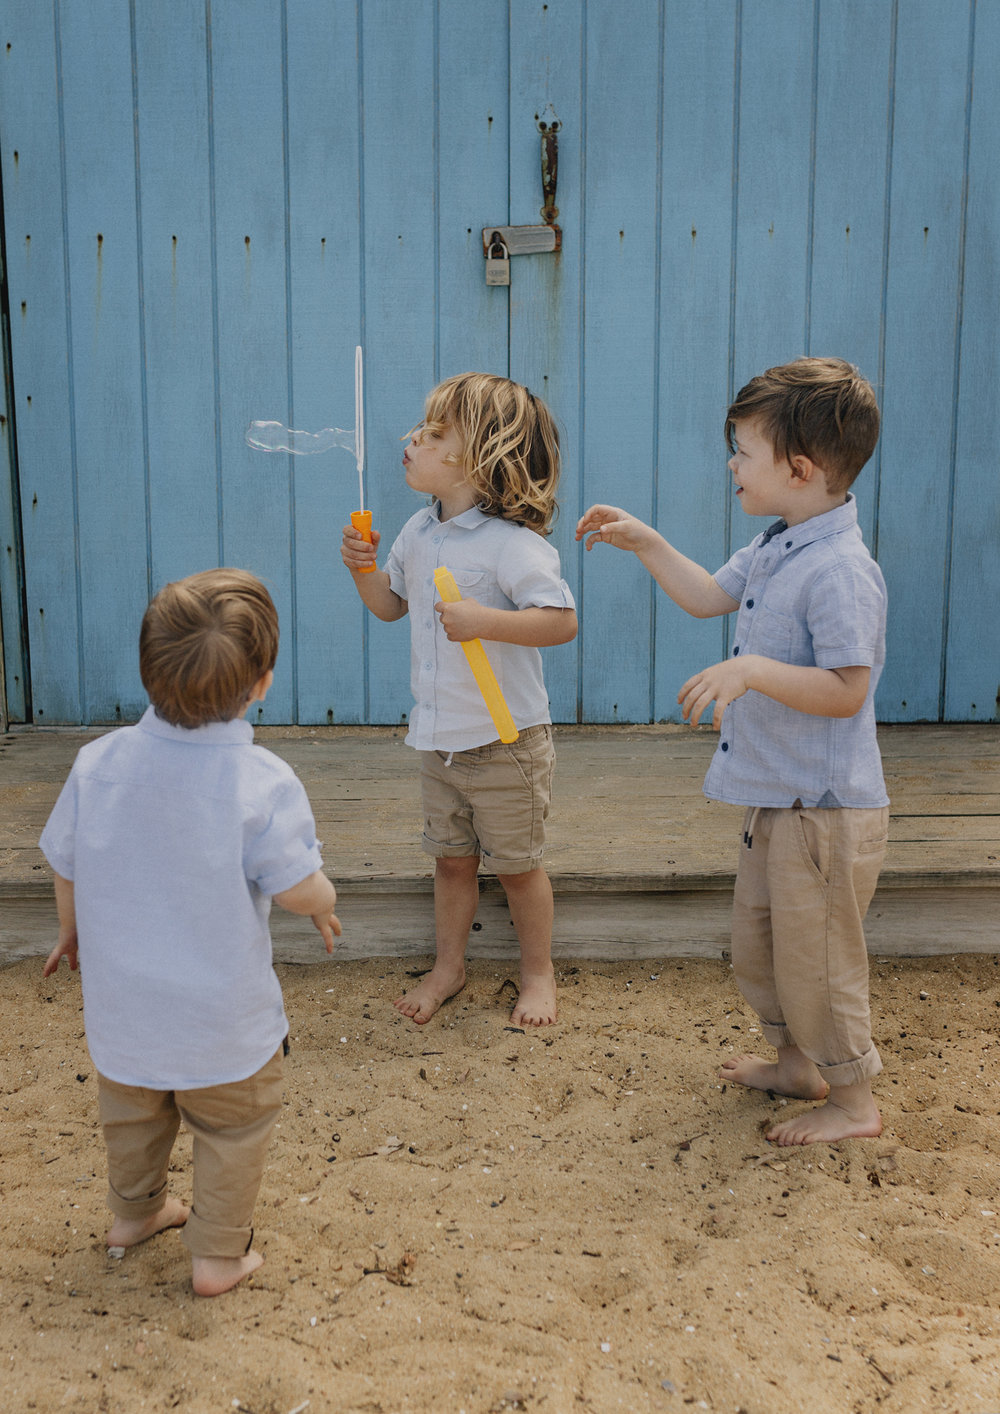 Cousins having fun blowing bubbles at the beach